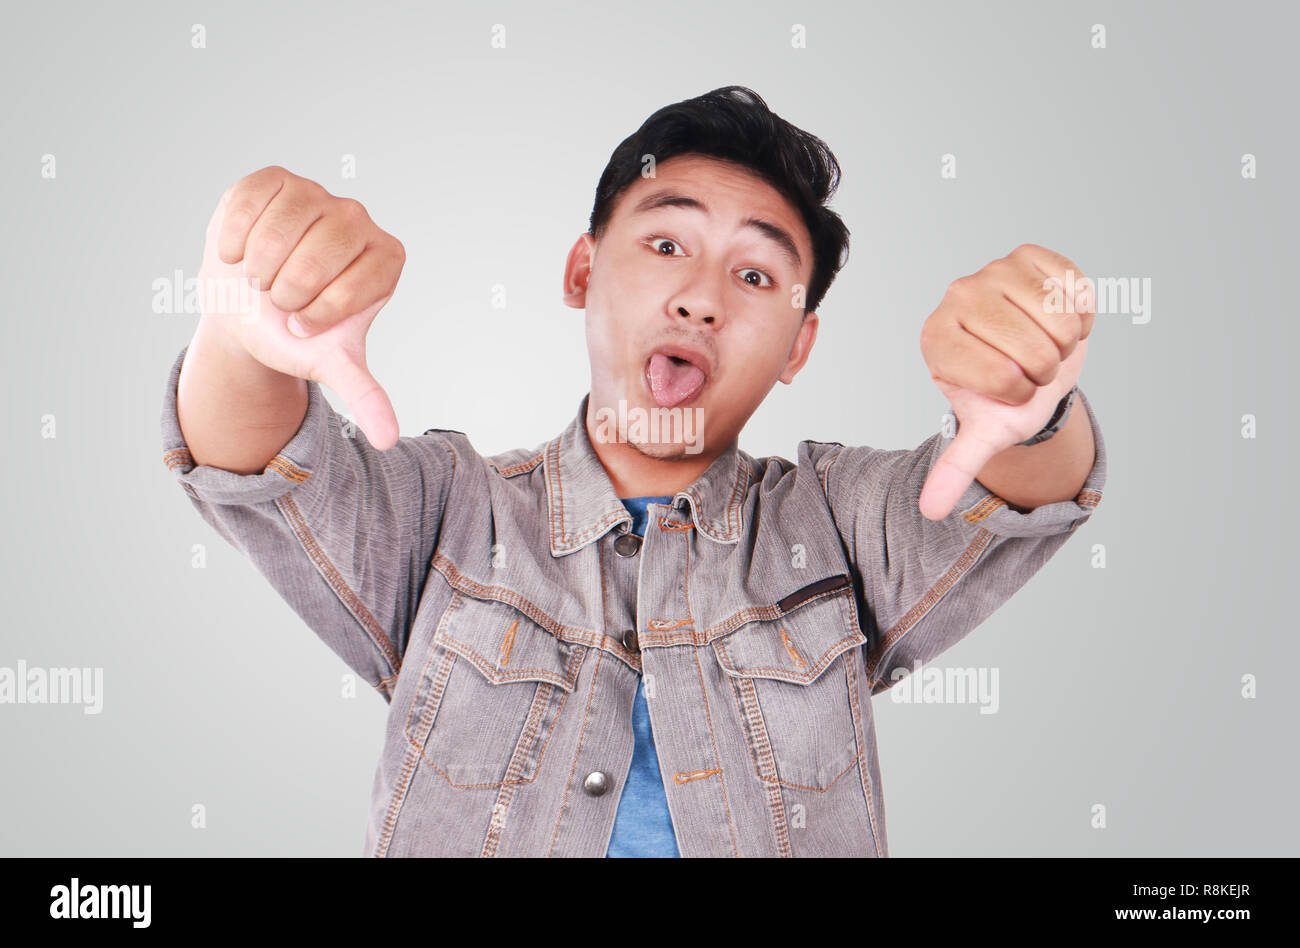 Photo image portrait of a cute young Asian man doing mocking gesture with tongue out and showing two thumbs down - Stock Image